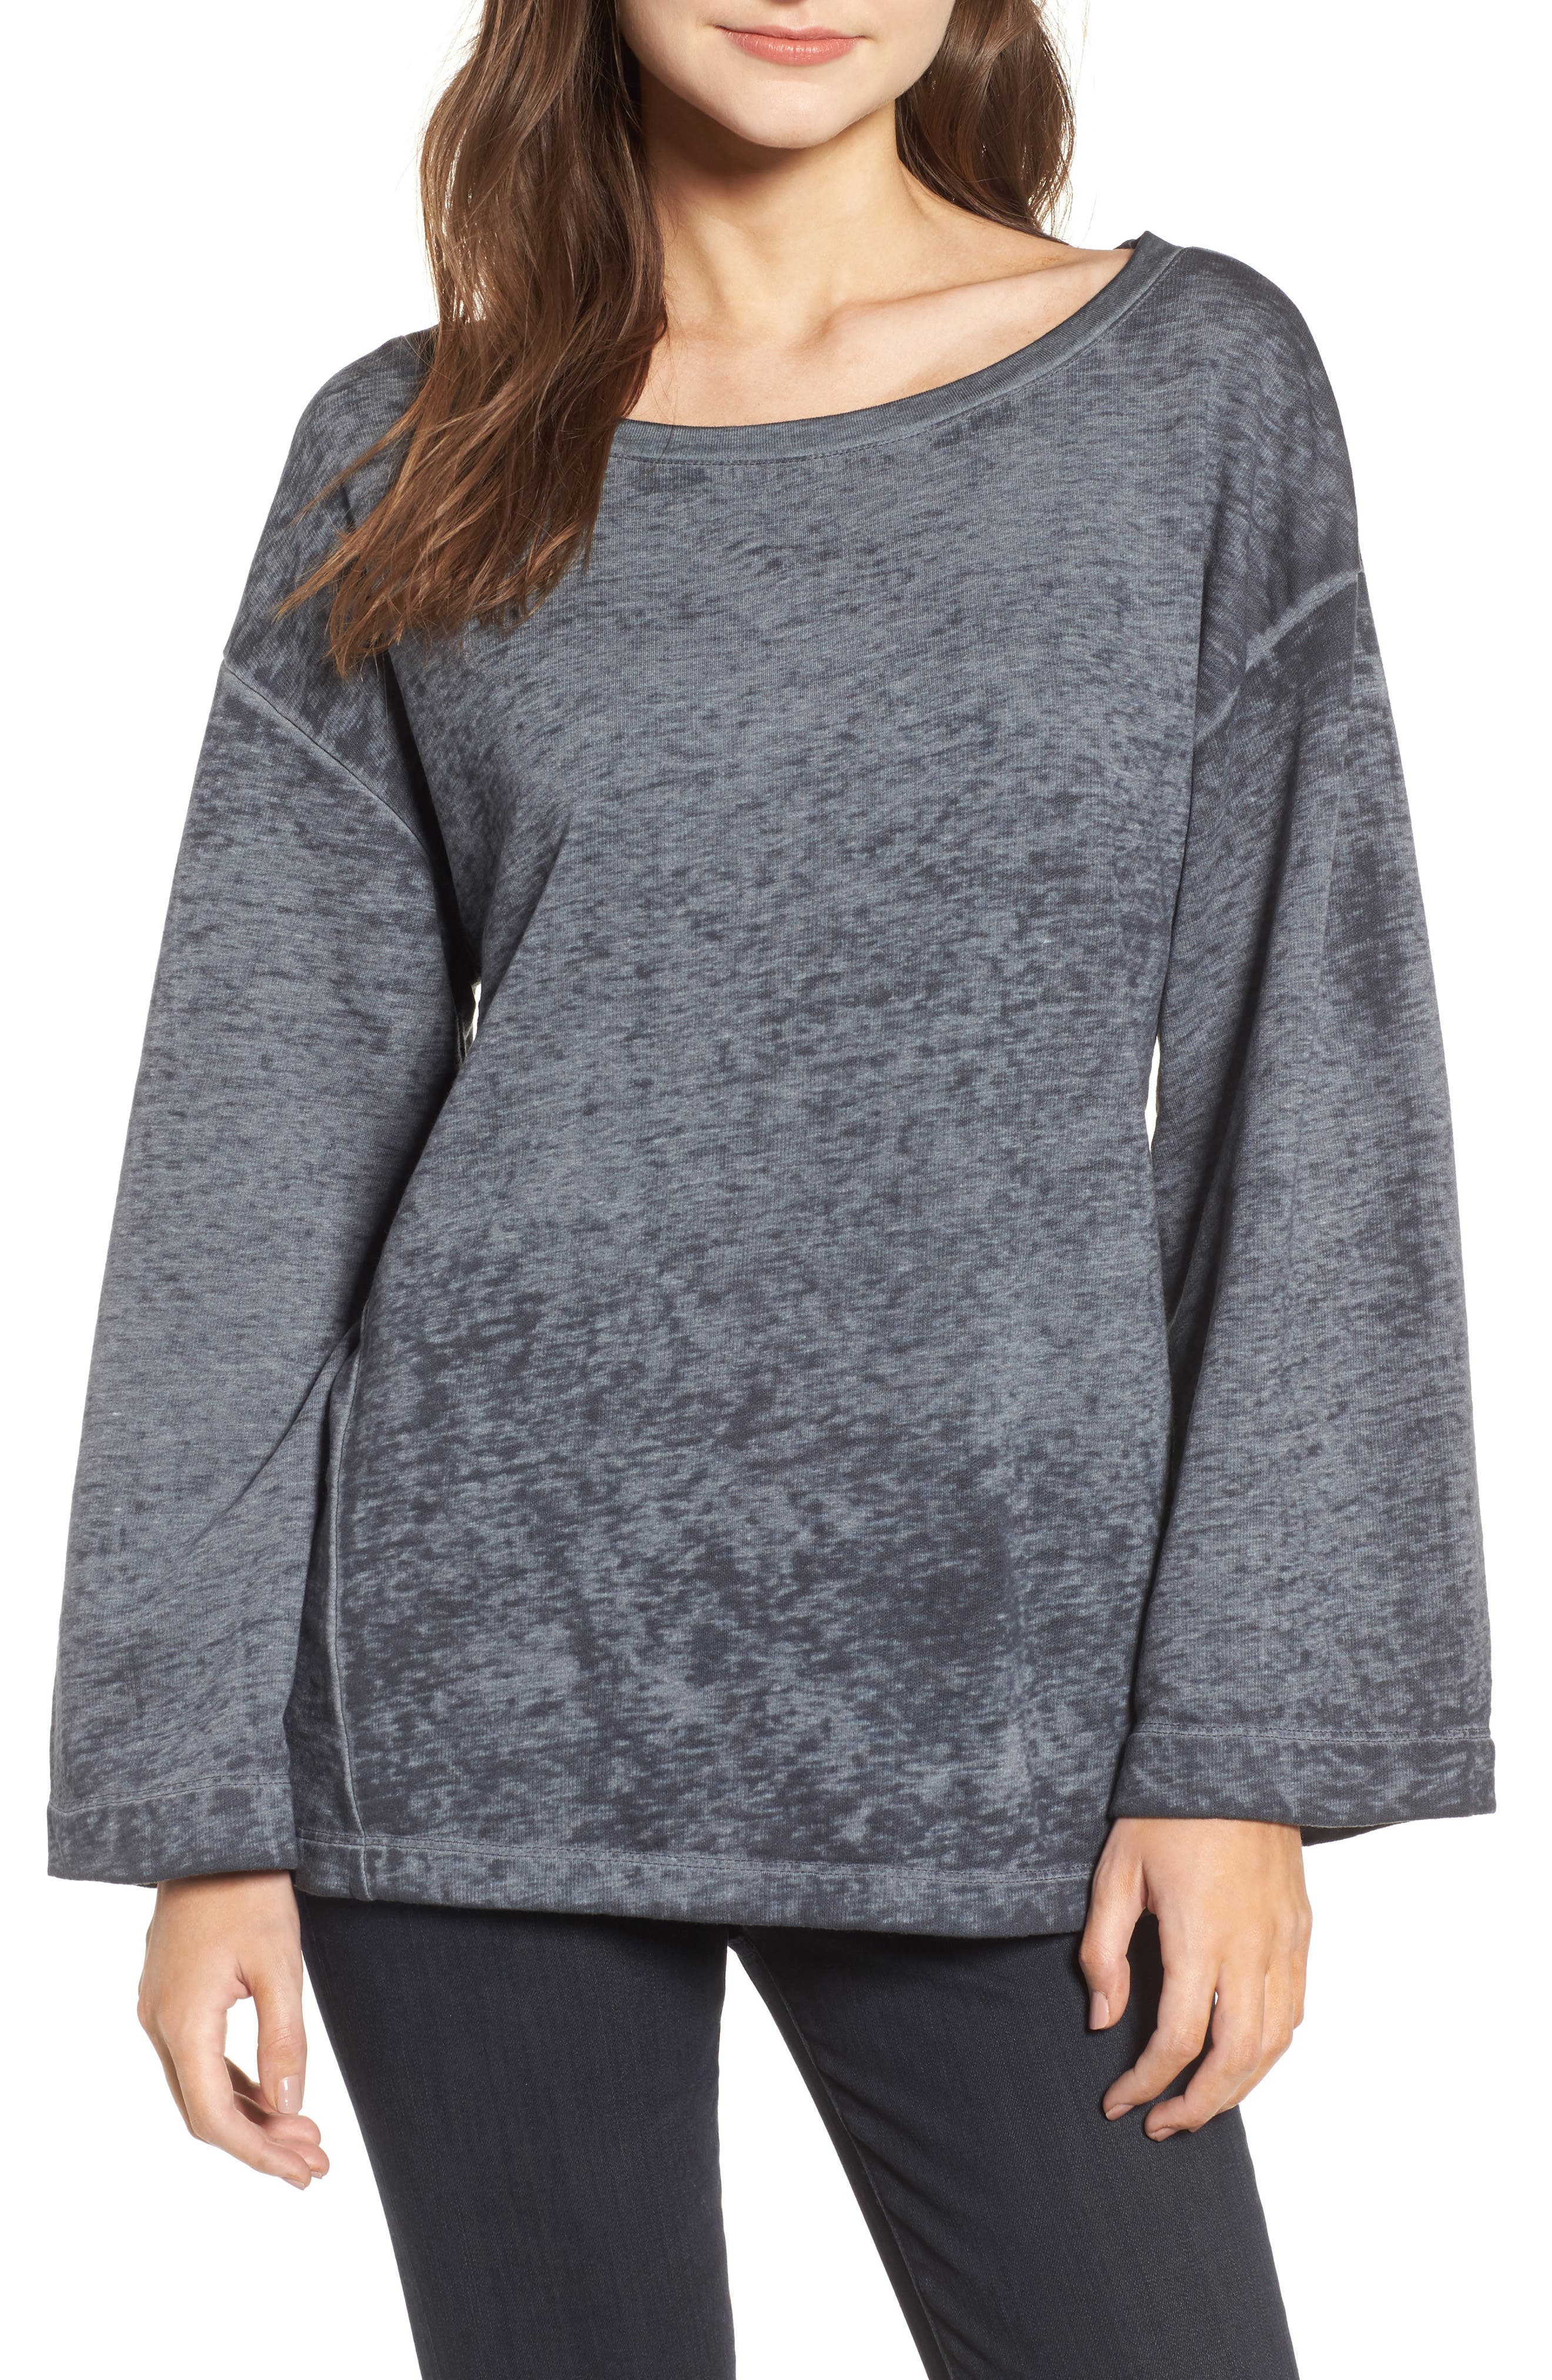 Bell Sleeve Sweatshirt,                             Main thumbnail 1, color,                             020